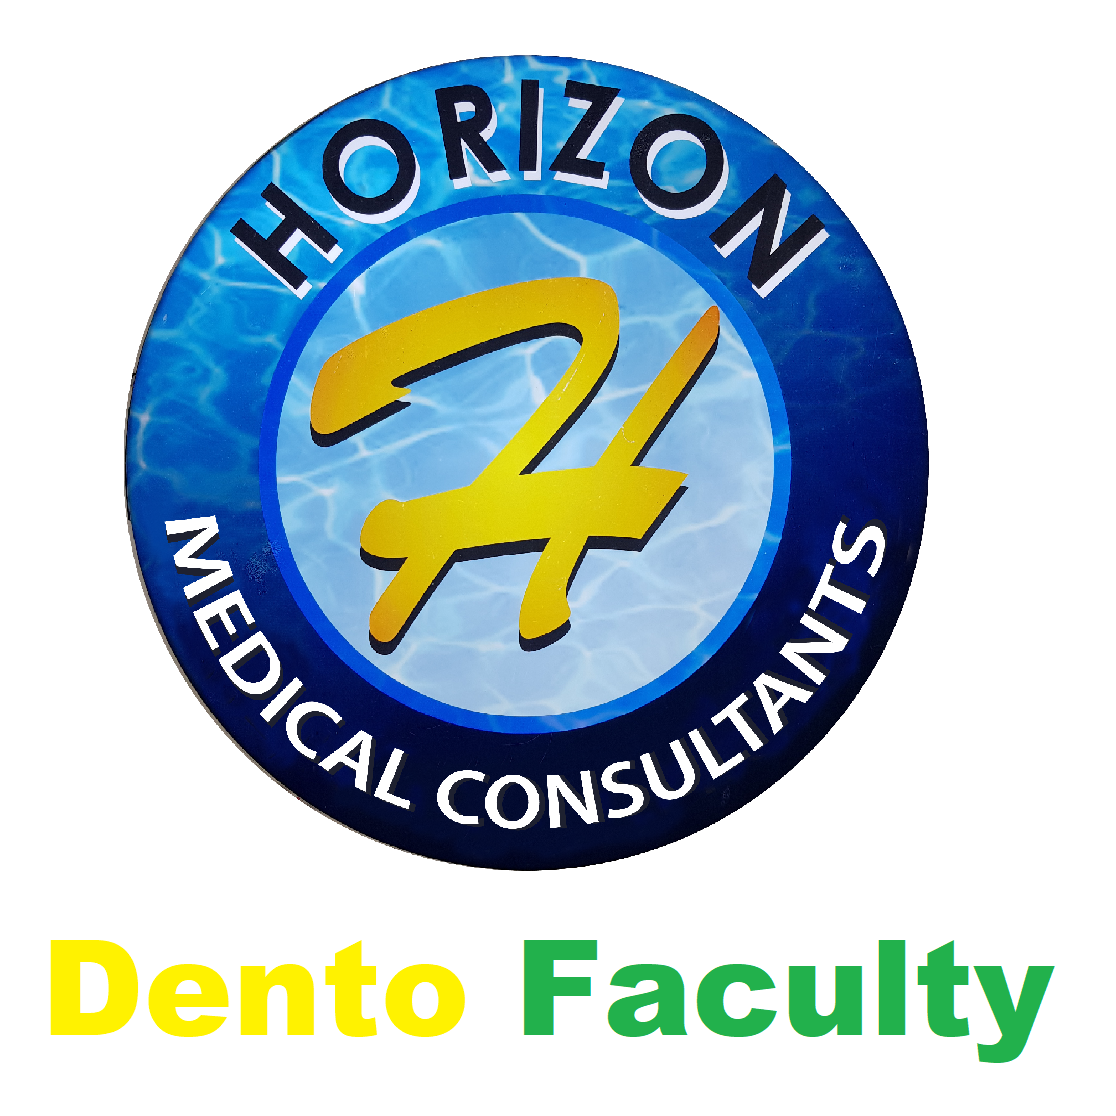 Dento Faculty